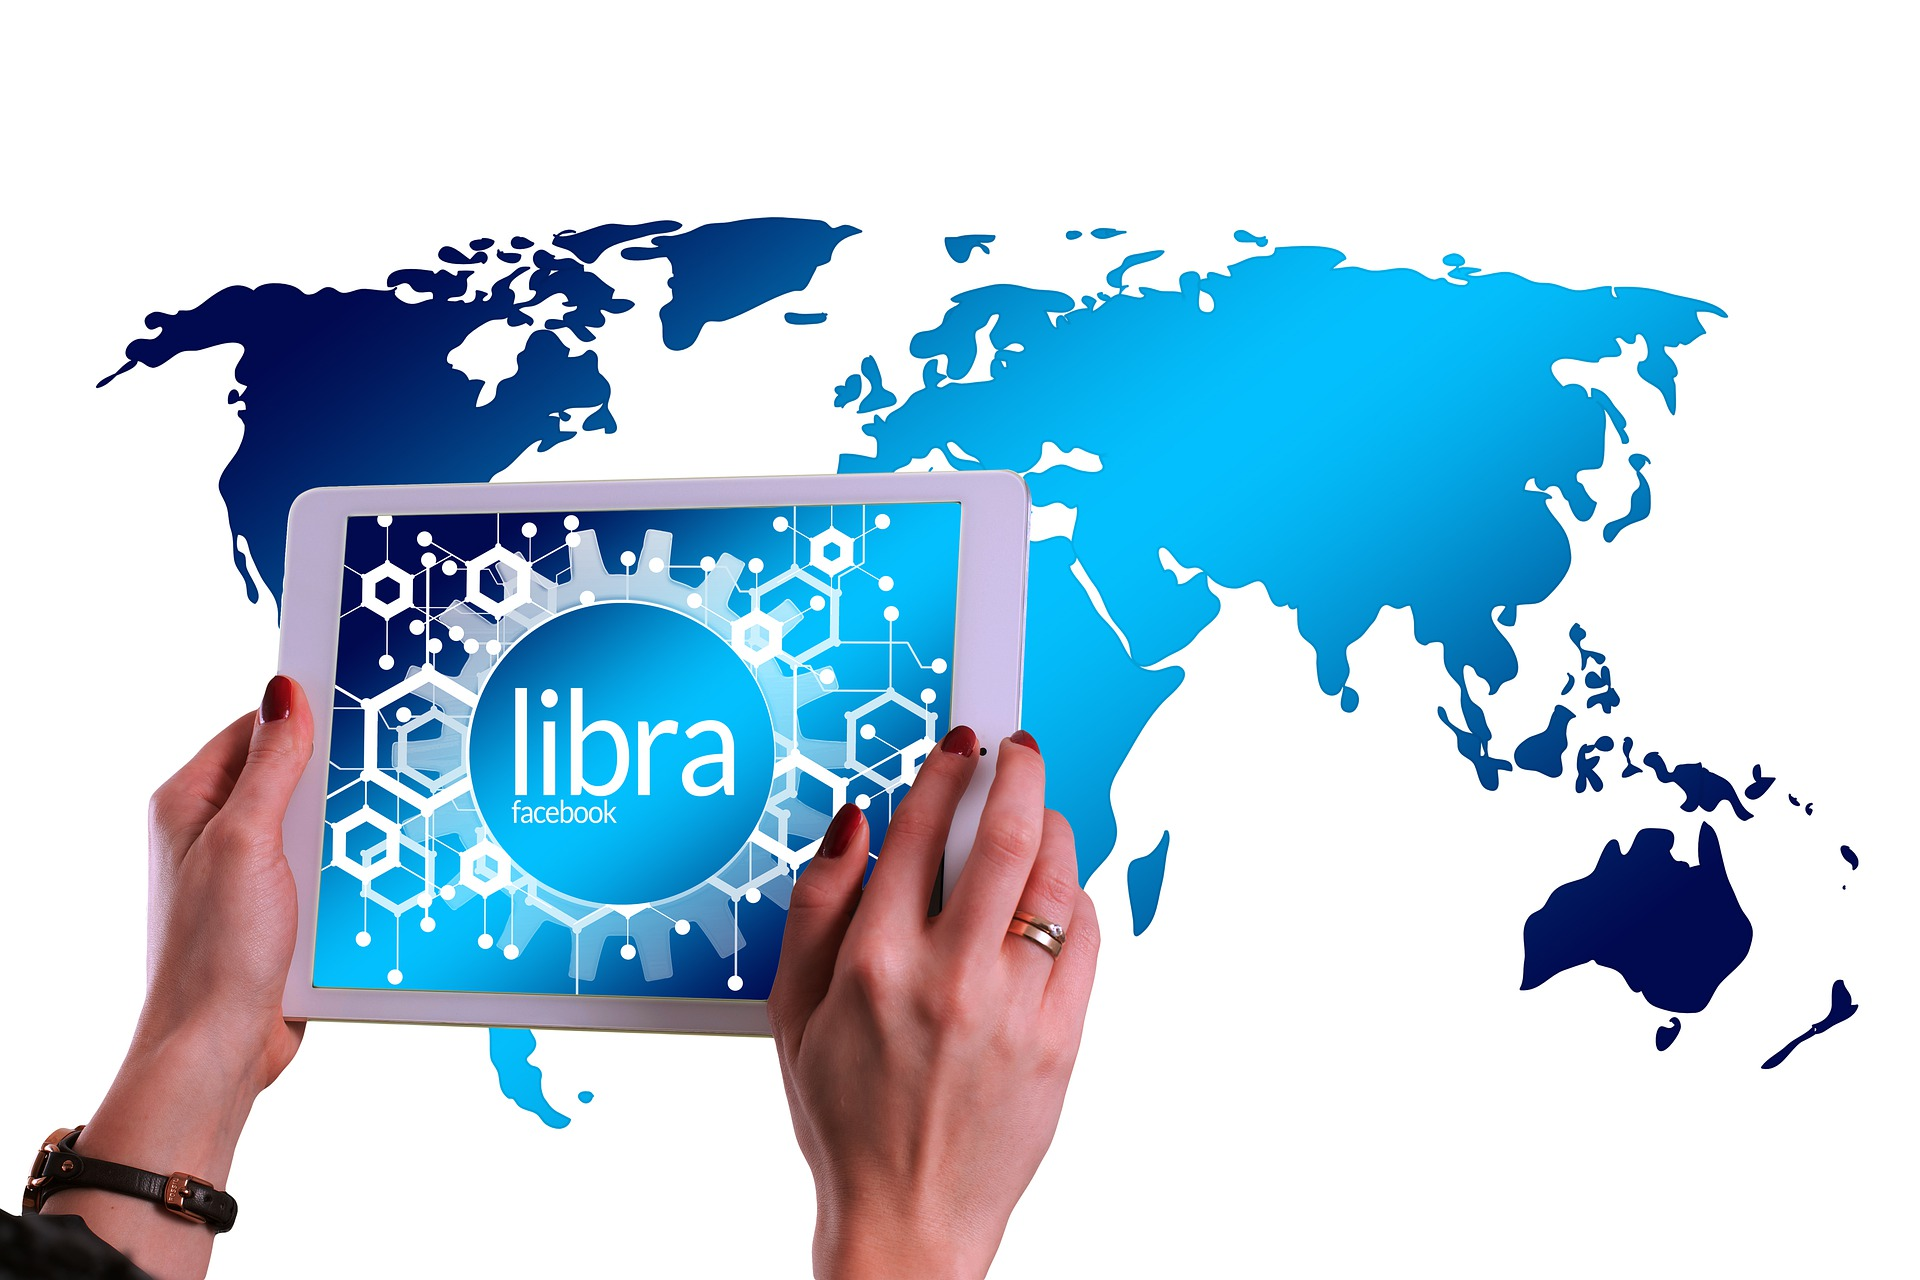 Japan to Look Into the Impact of Facebook's Libra Ahead of G7